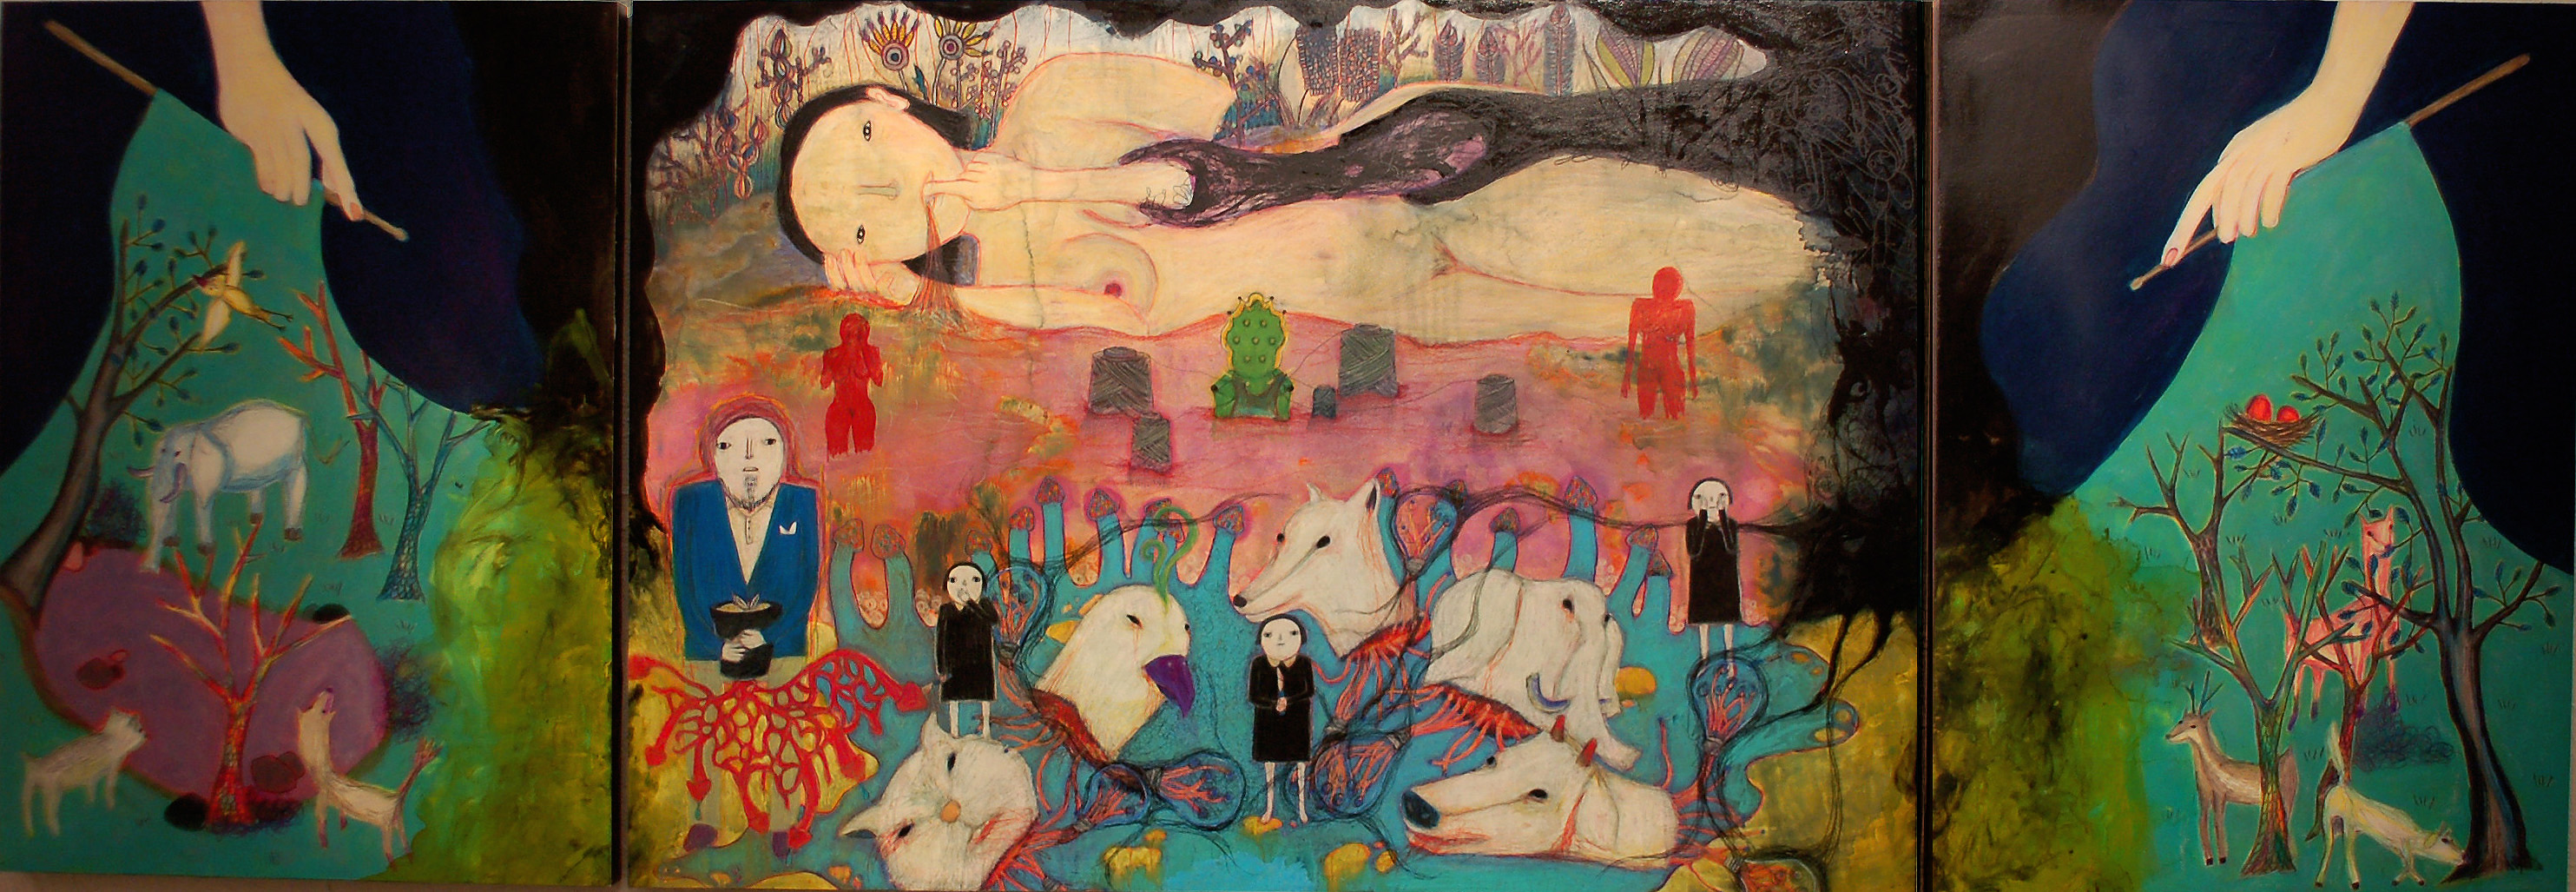 The 4th Exhibition of Painting: Hysterics